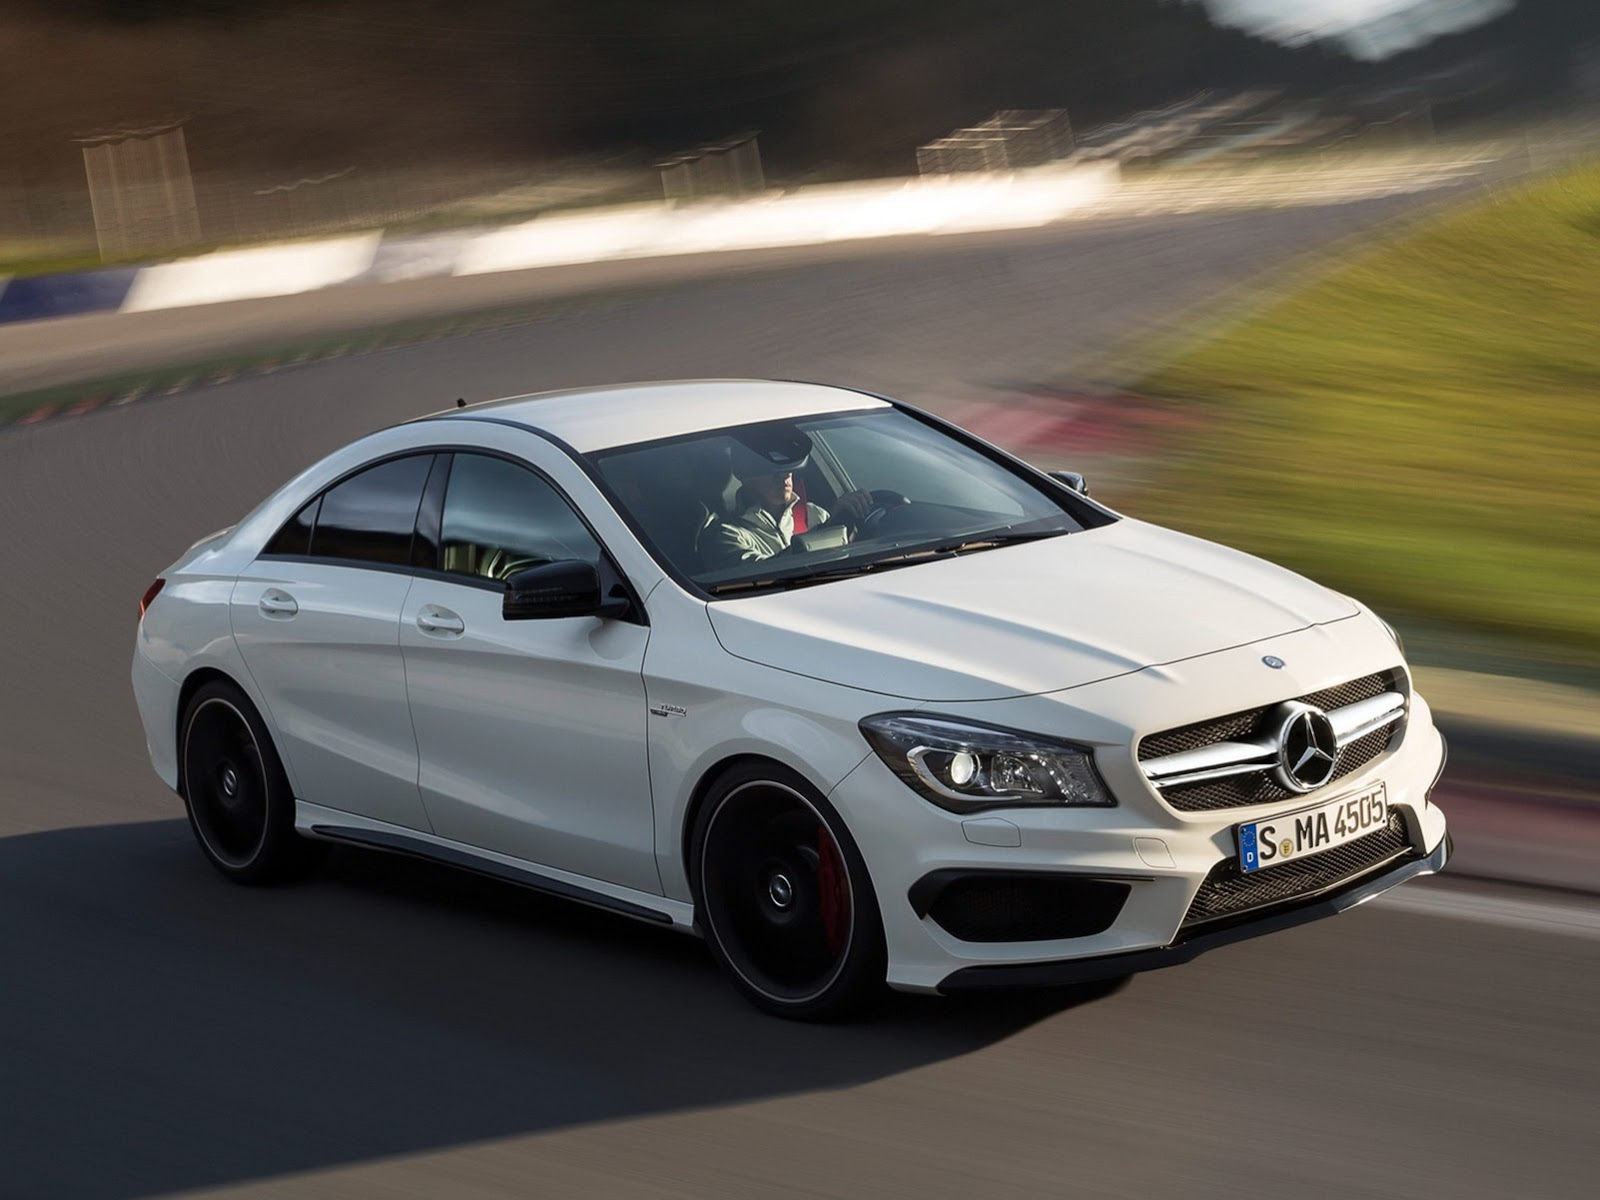 Mercedes benz cla 45 amg images leaked for Mercedes benze cla